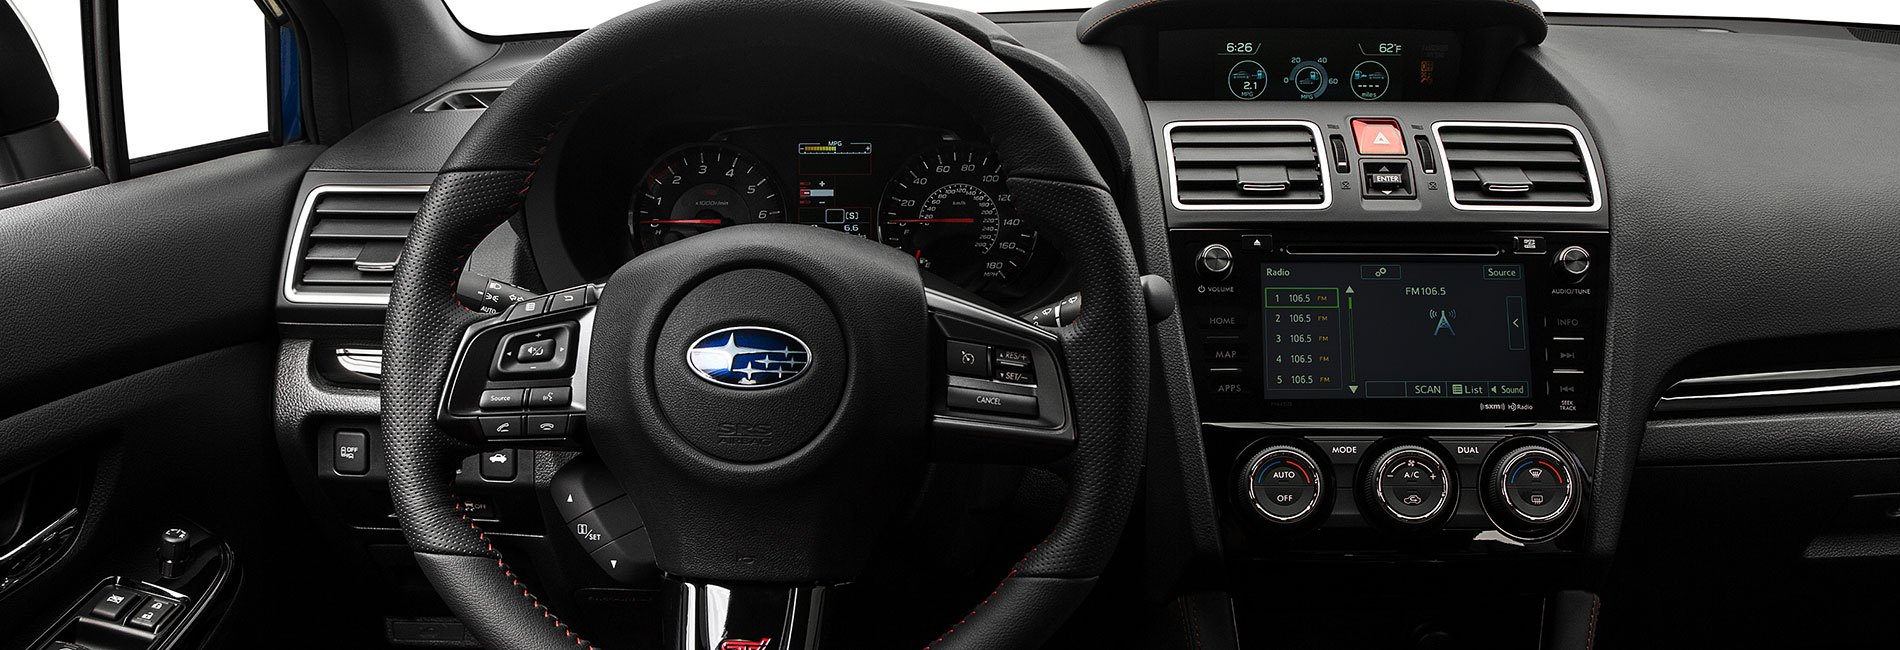 2018 Subaru WRX Interior Features